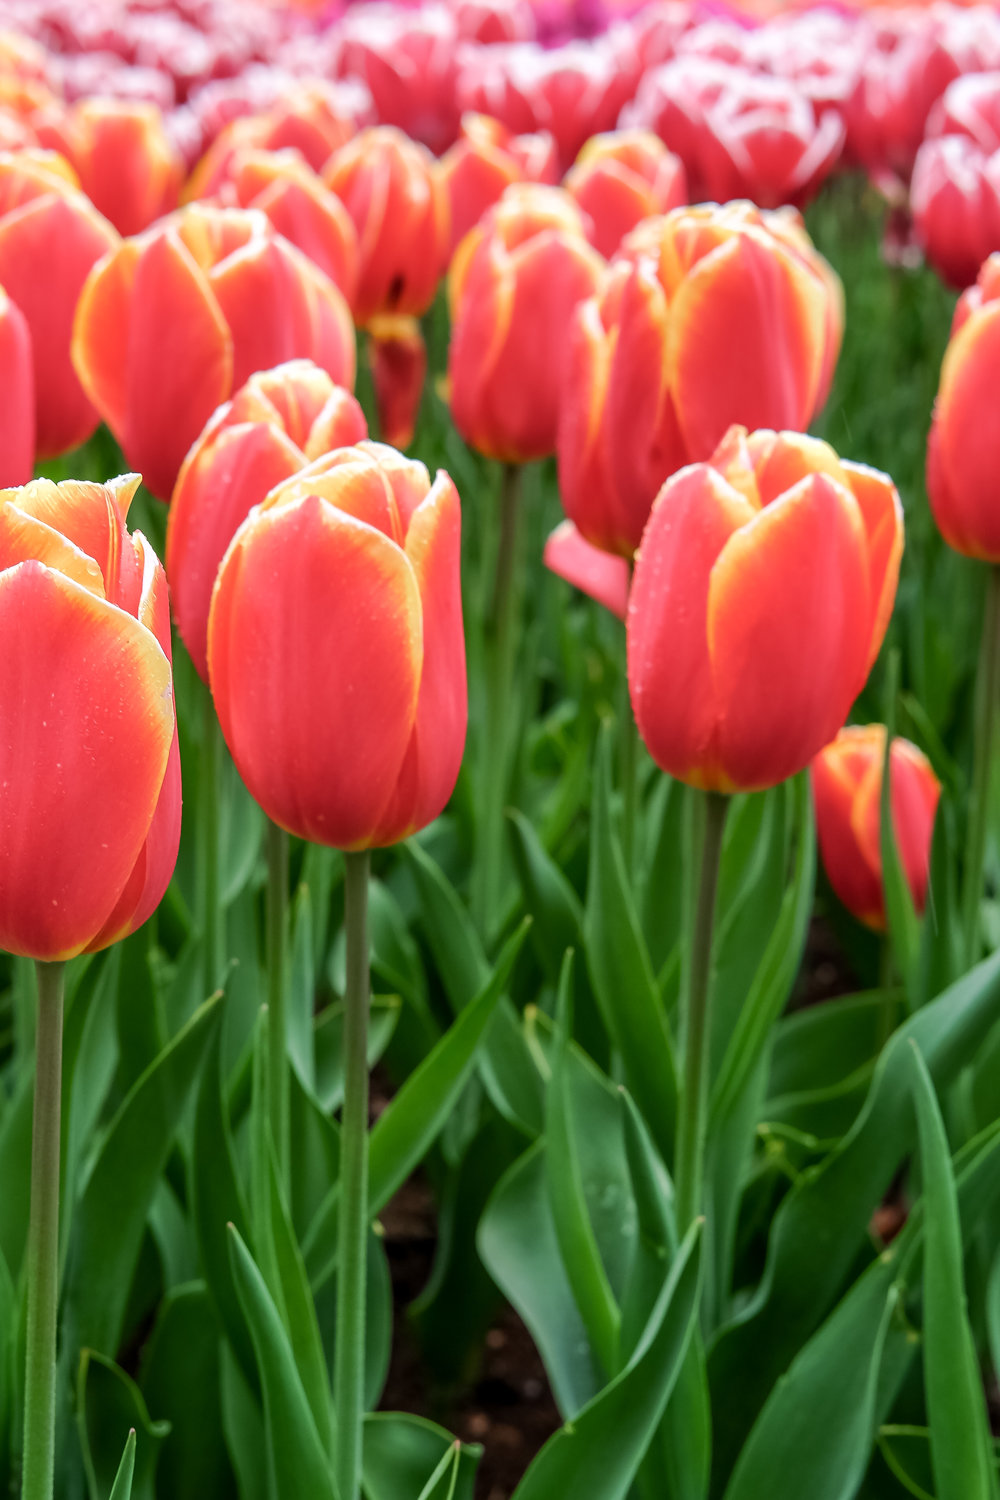 Favorite Flower: Tulips